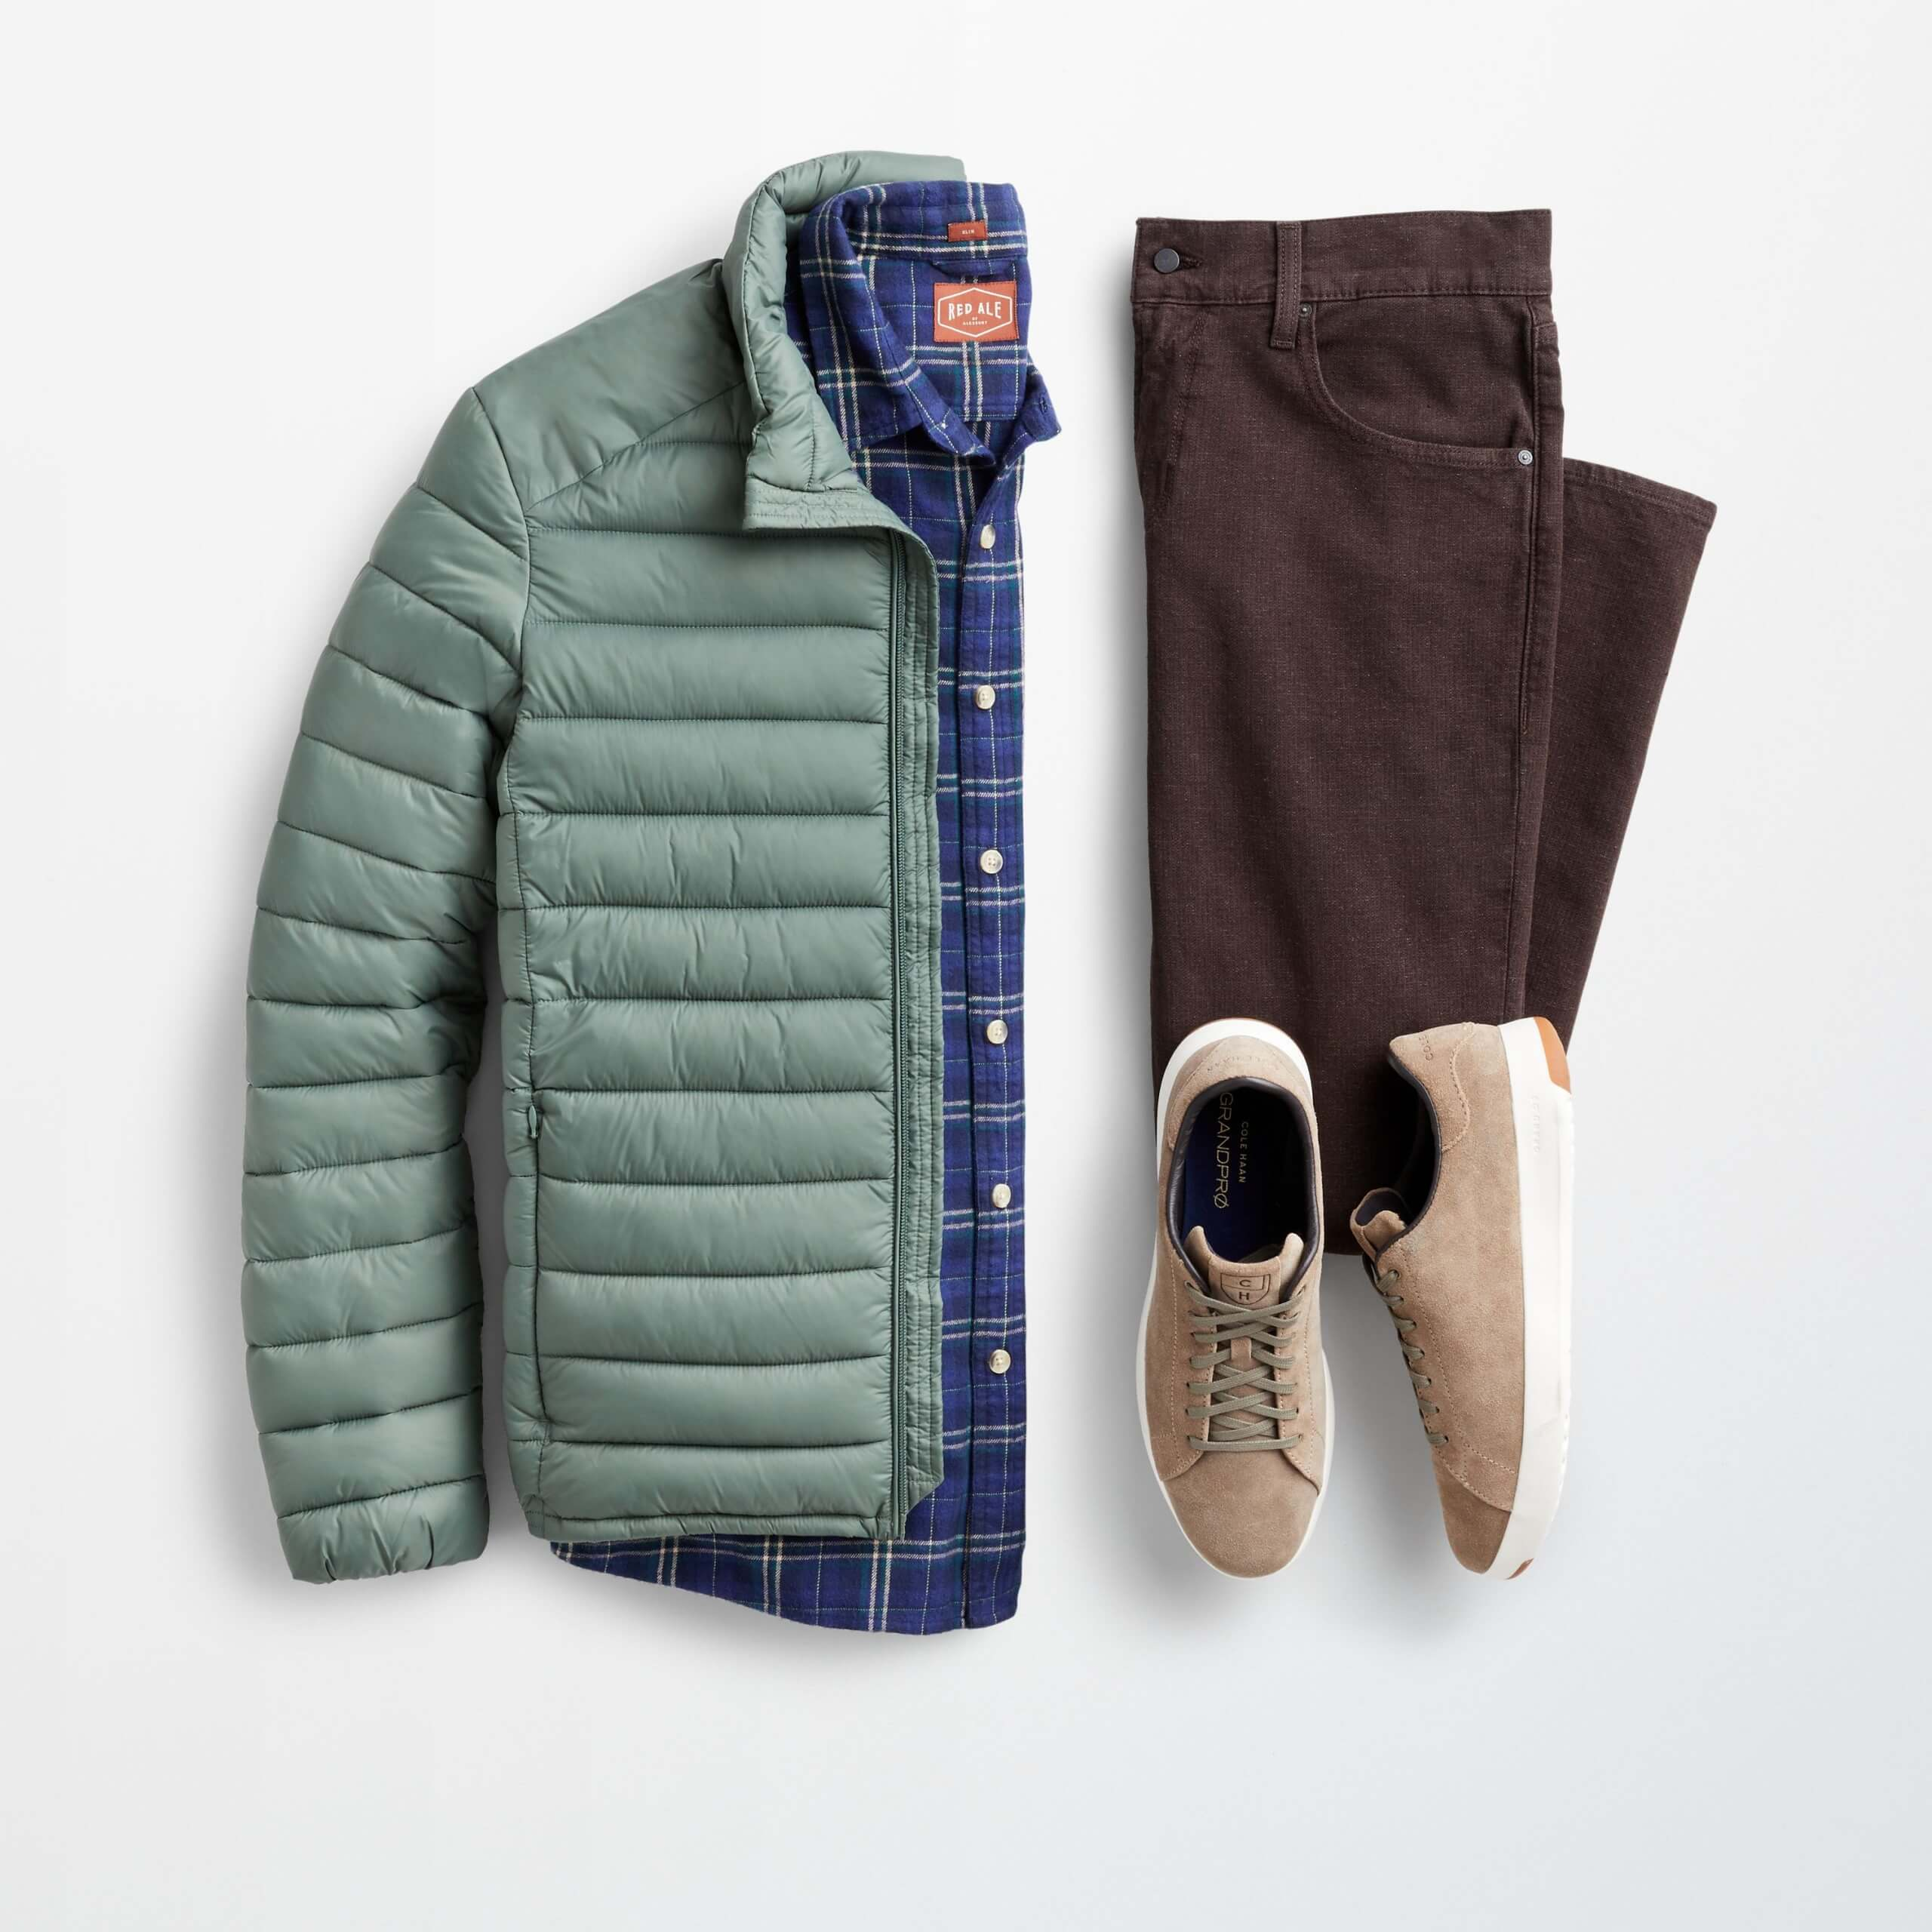 Stitch Fix Men's outfit laydown featuring green puffer jacket over navy plaid button-down shirt, brown pants and tan suede sneakers.